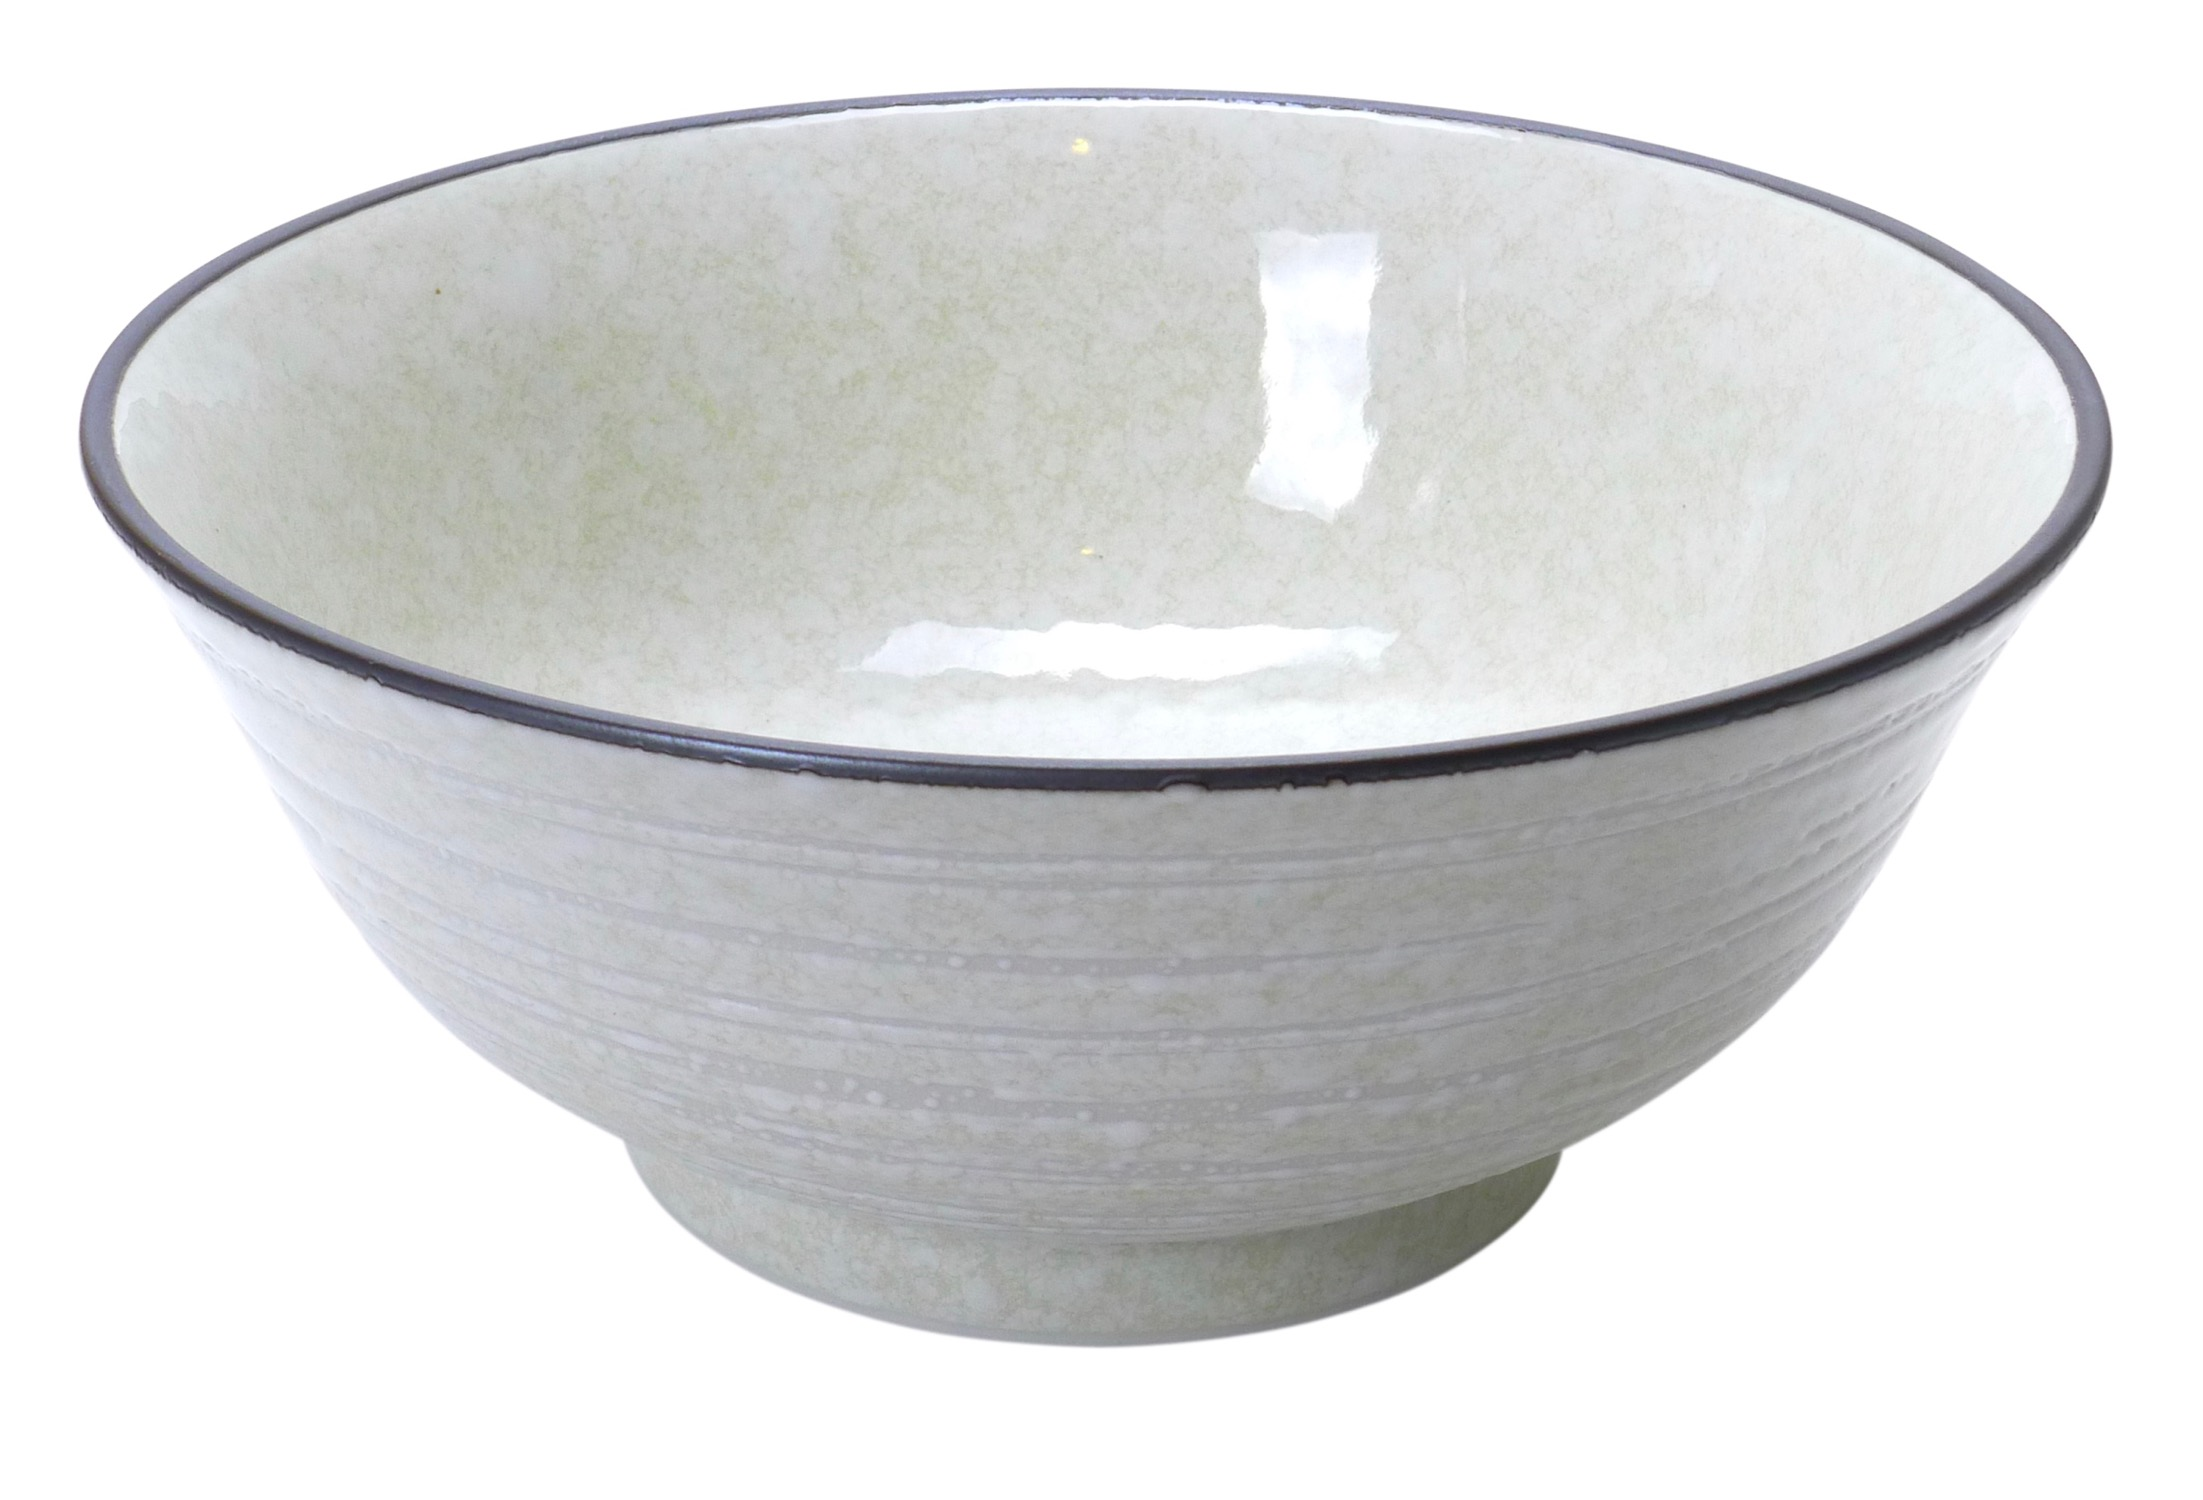 Image of White Handformed Porcelain Bowls, 6.75x3.25-Inch, Set Of Two